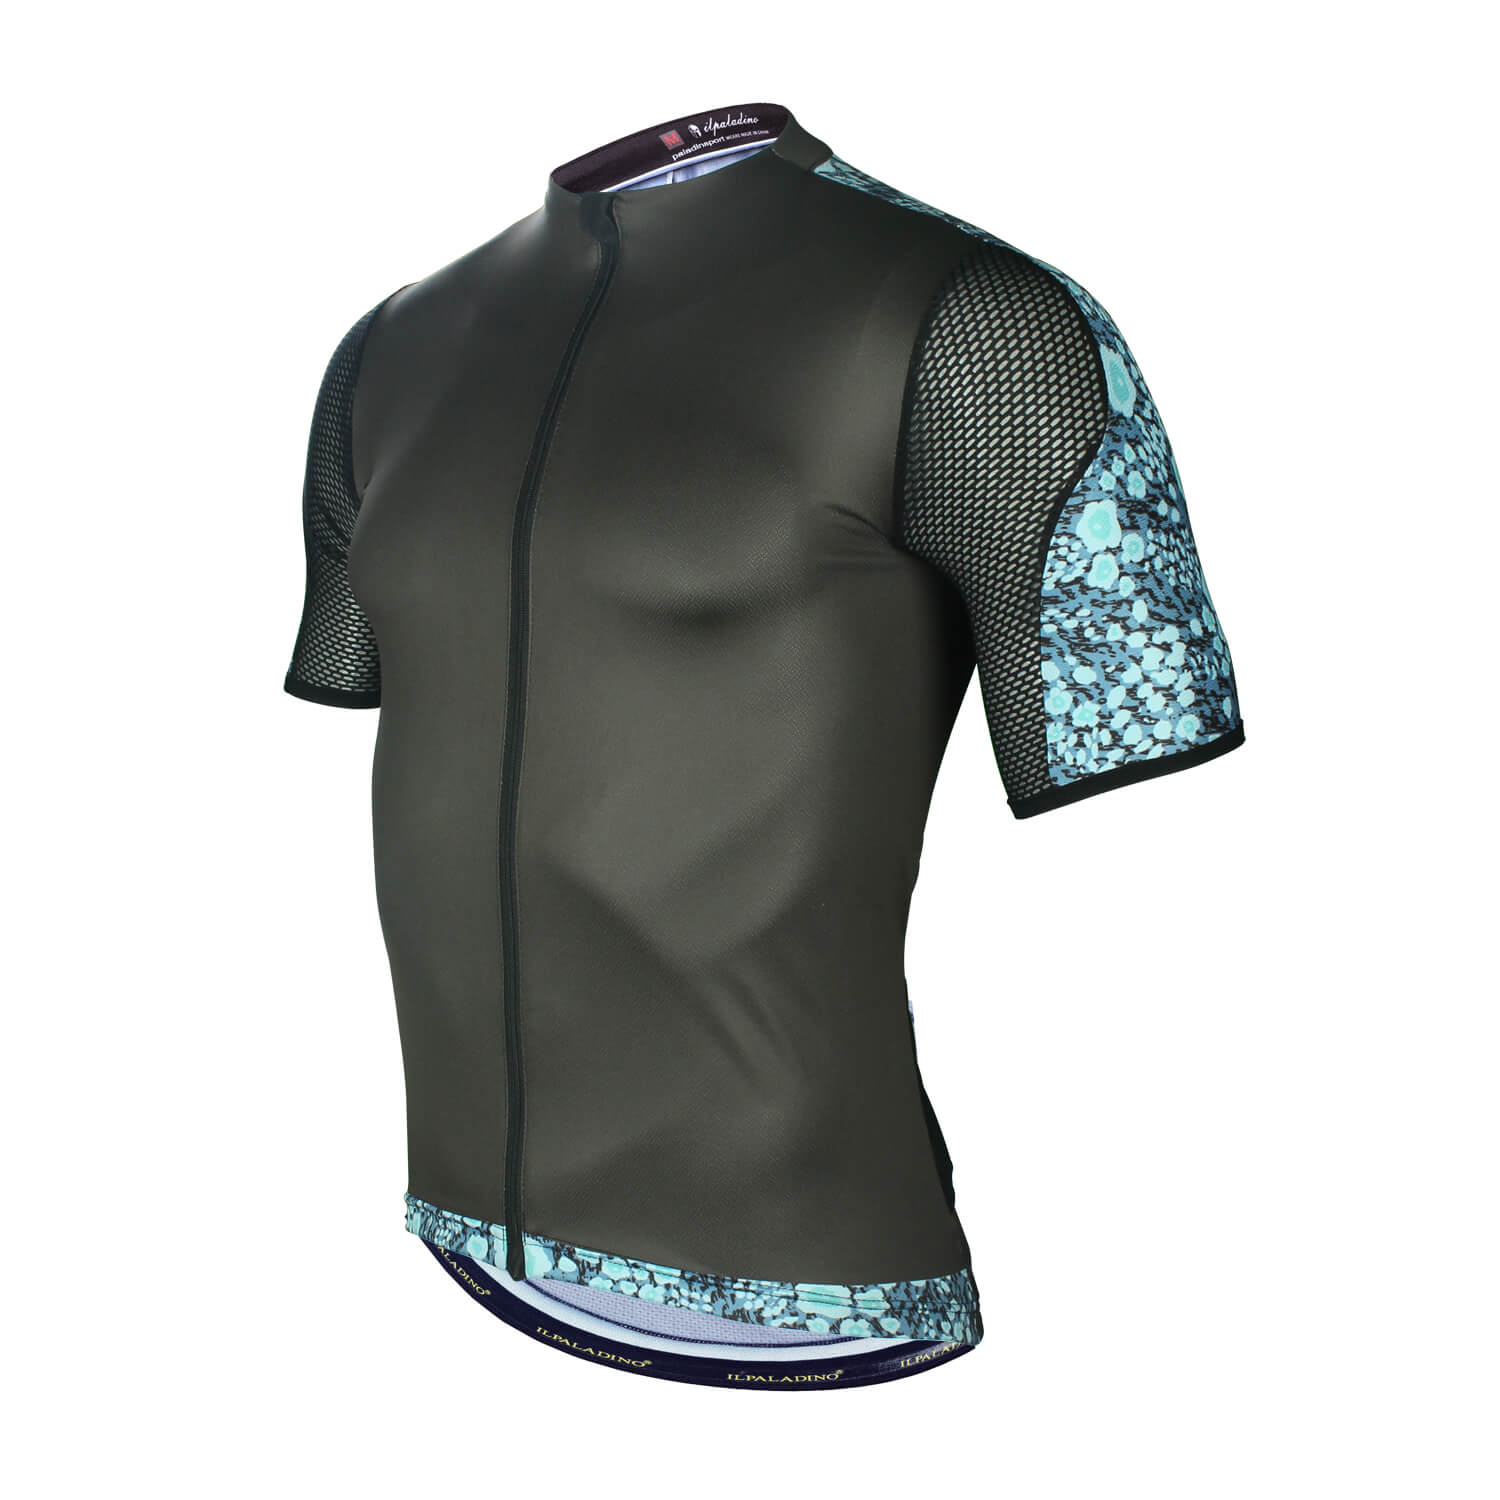 Quality Cycling Clothes Mens Black 3xl Cycling Jersey